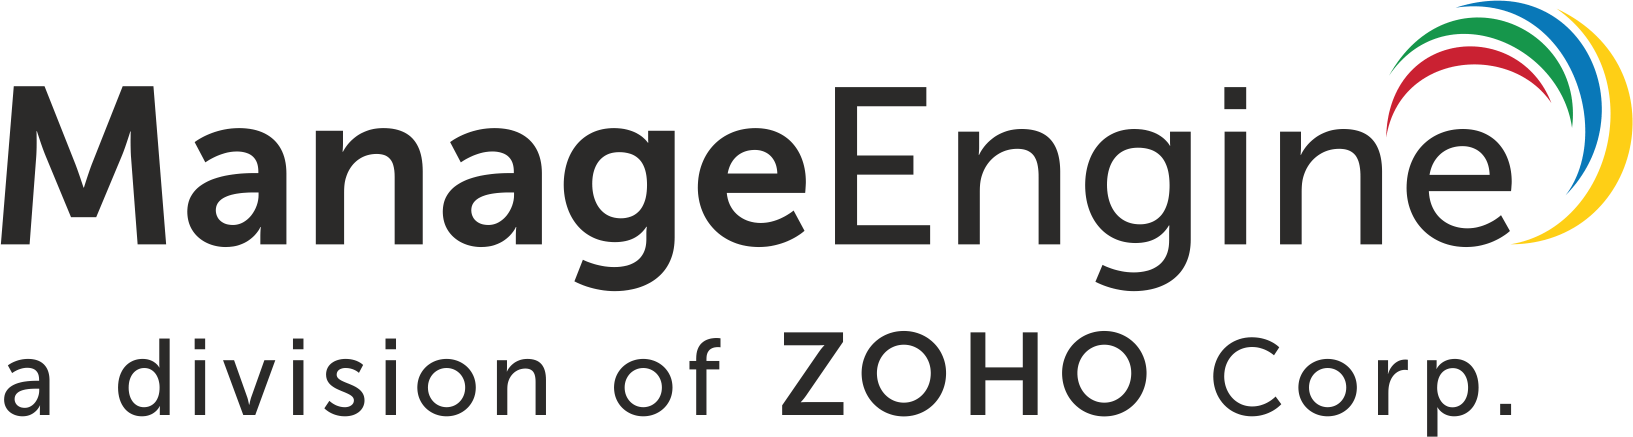 manageengine_logo zoho